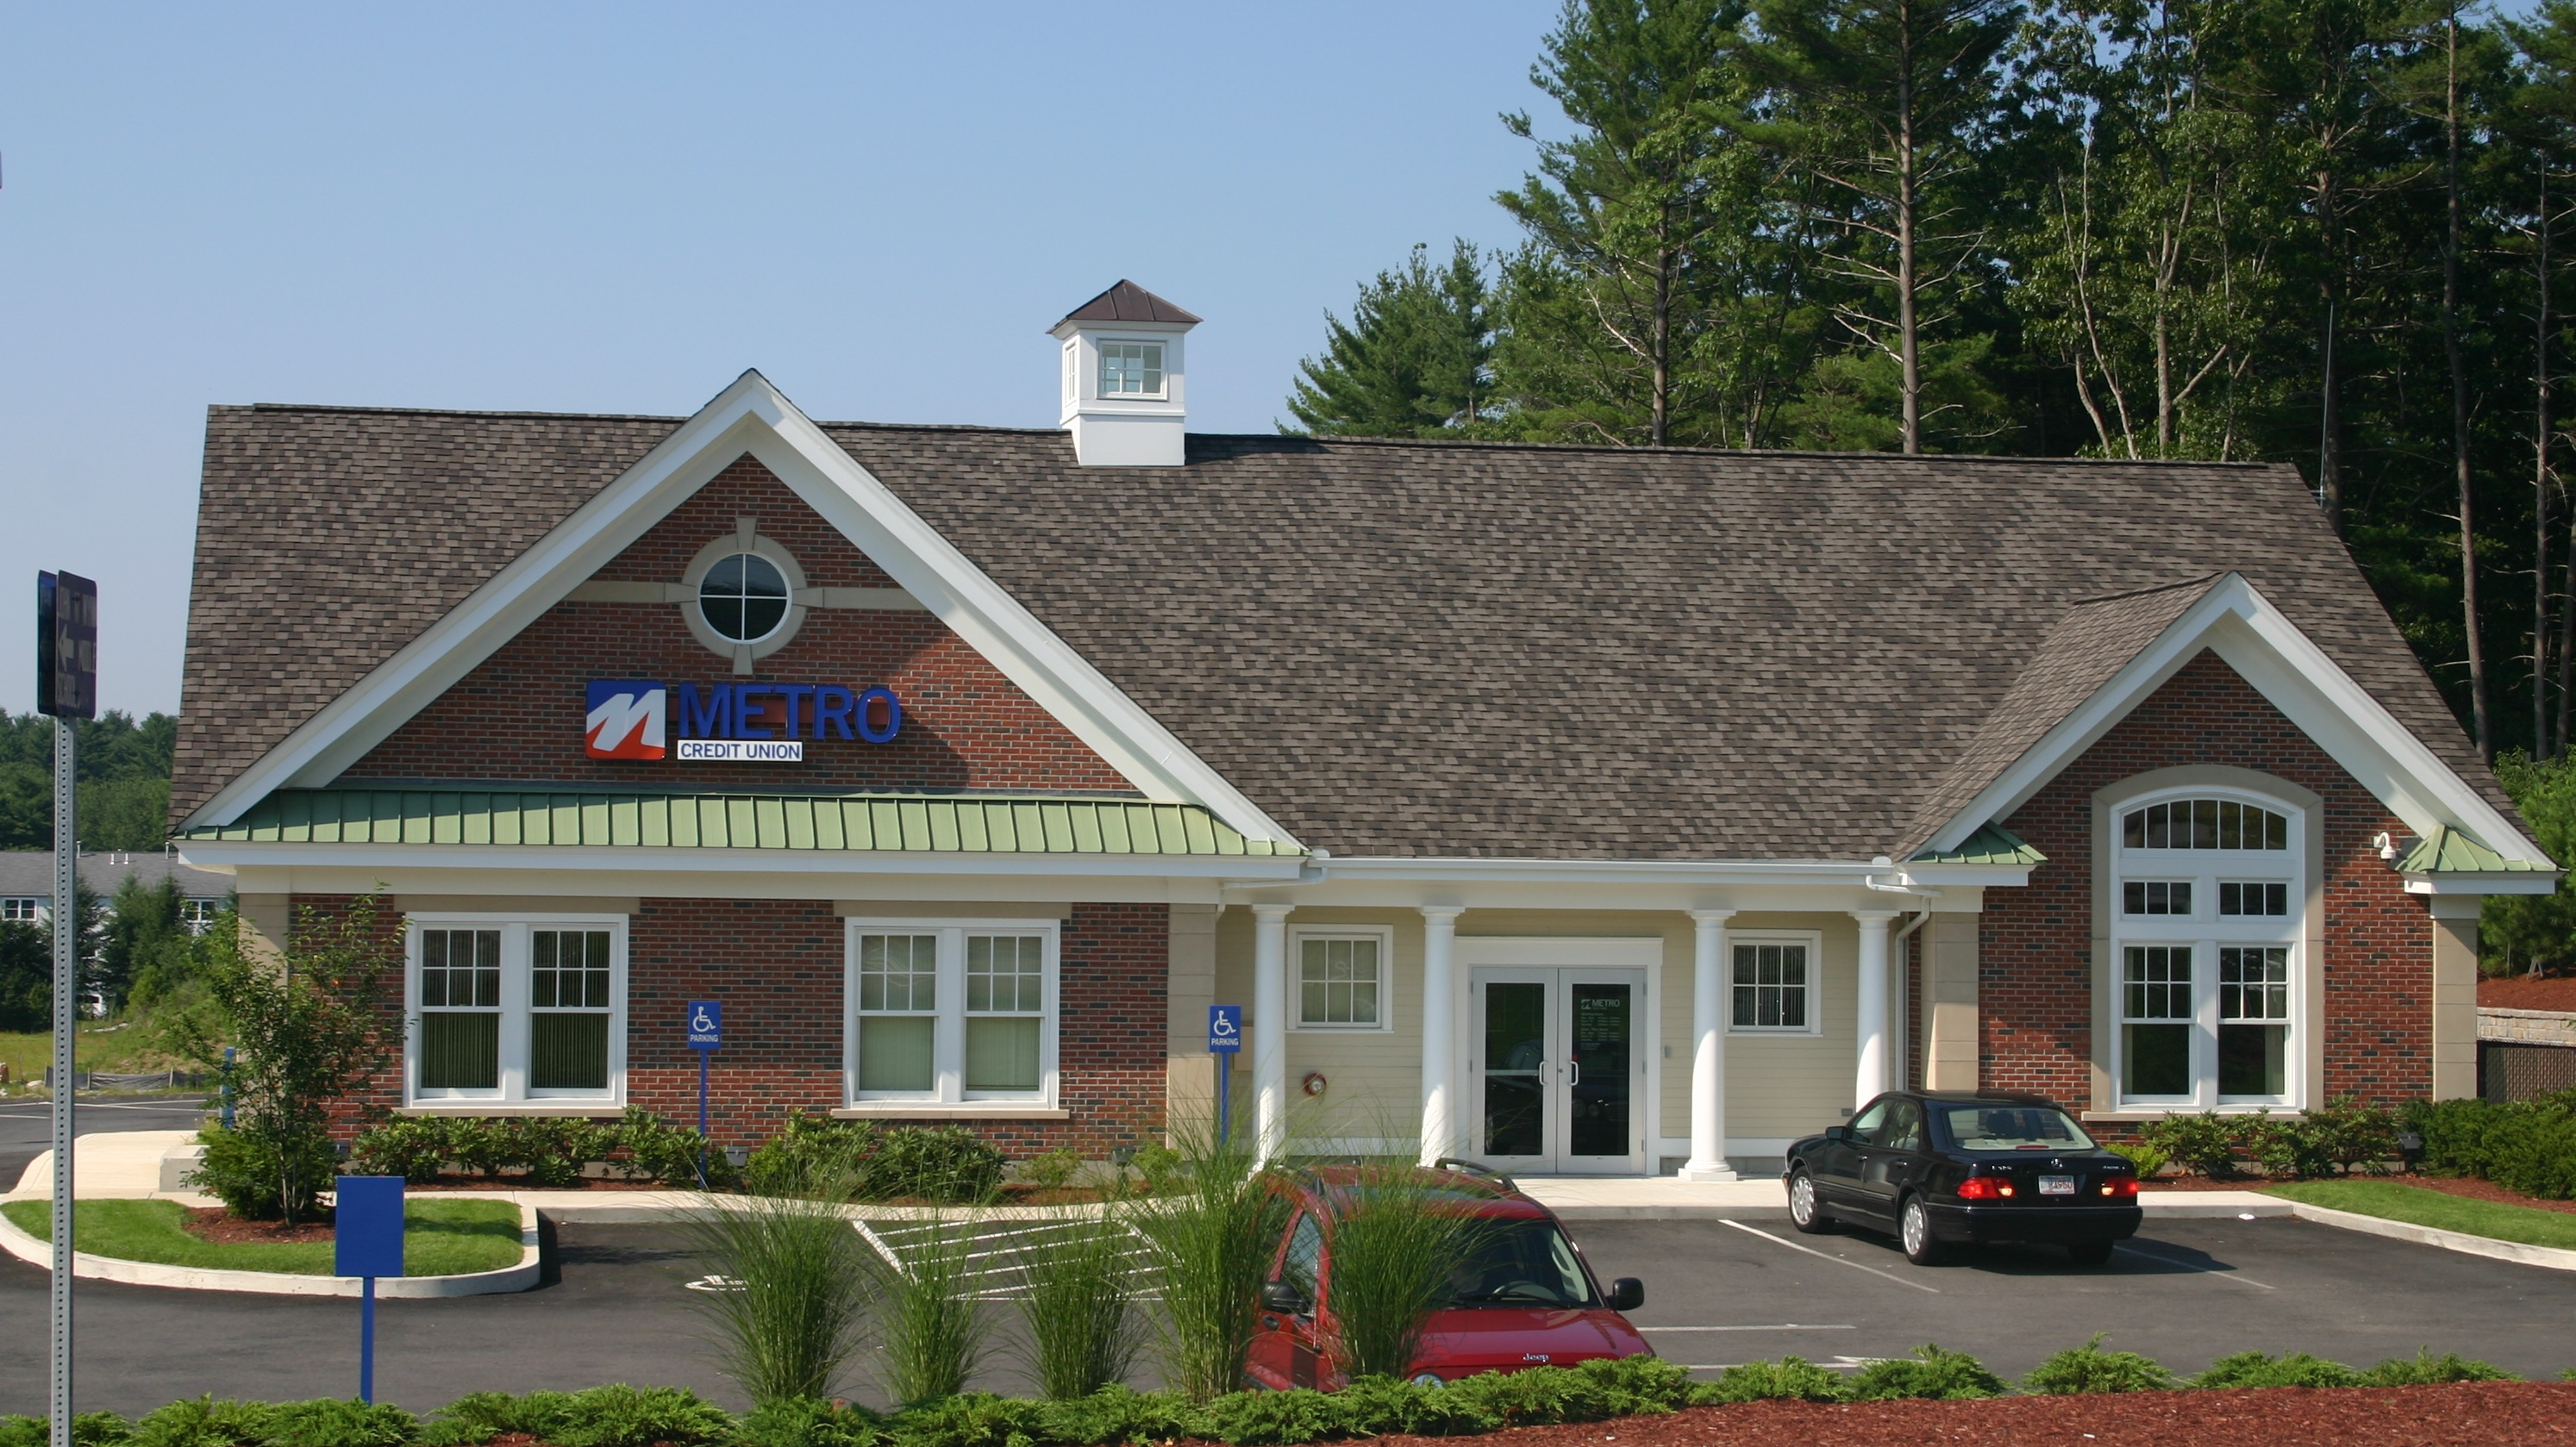 Metro Credit Union Branches